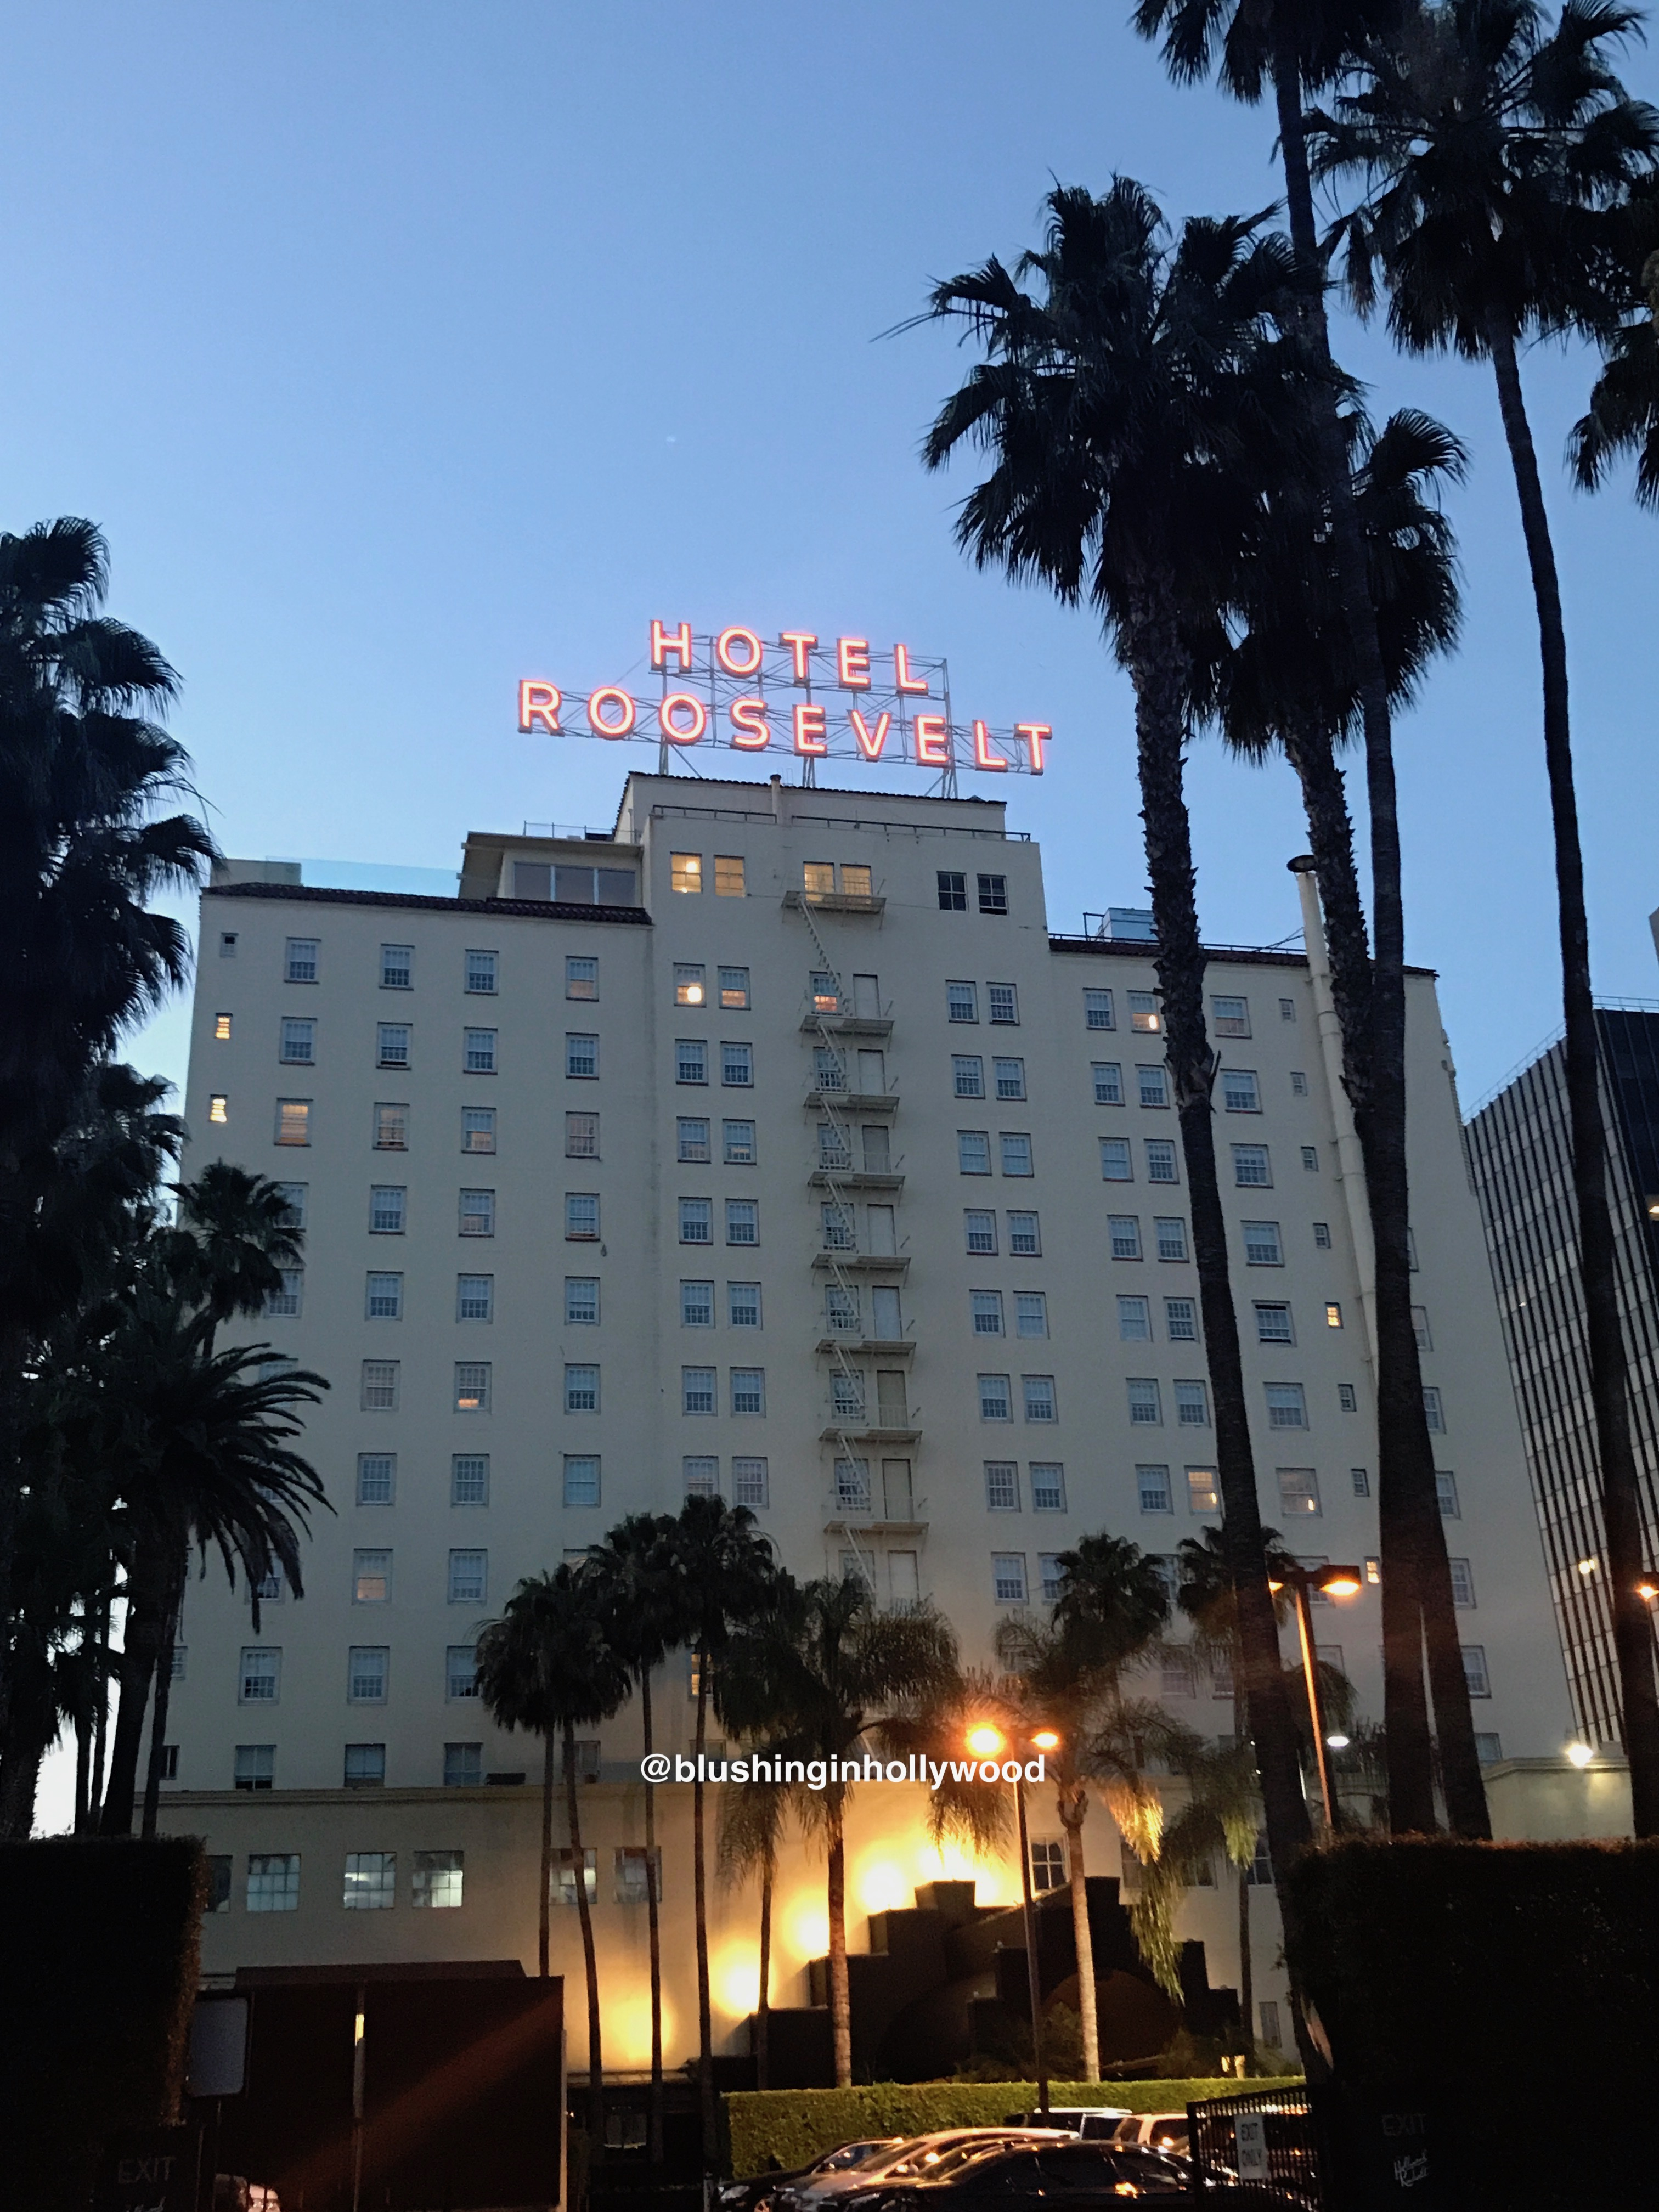 Hollywood Roosevelt Hotel: Blushing In Hollywood